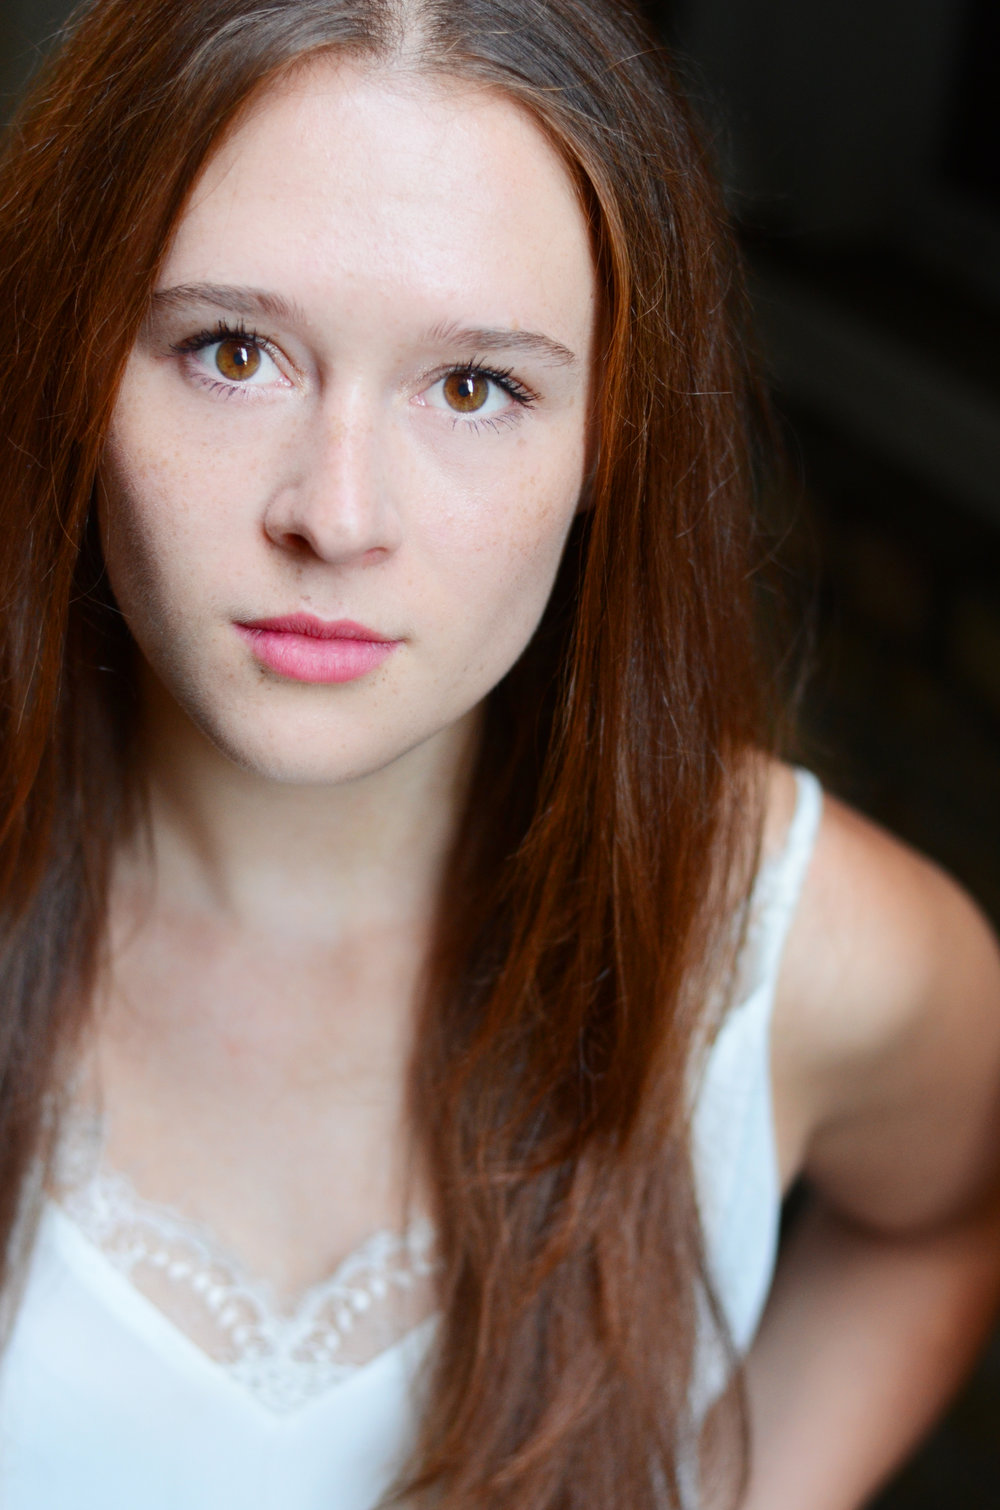 Anna Civik (Alexandra Giddens)  is very excited to be working with Citadel for the first time! Other Chicago credits include:  The Whisper Network  (Piven Theatre Workshop),  Twelfth Night  (Midsommer Flight), Bechdel Fest (Broken Nose), and  Wrinkle In Time  (Lifeline). Anna is a proud graduate of Northwestern University's theatre program!